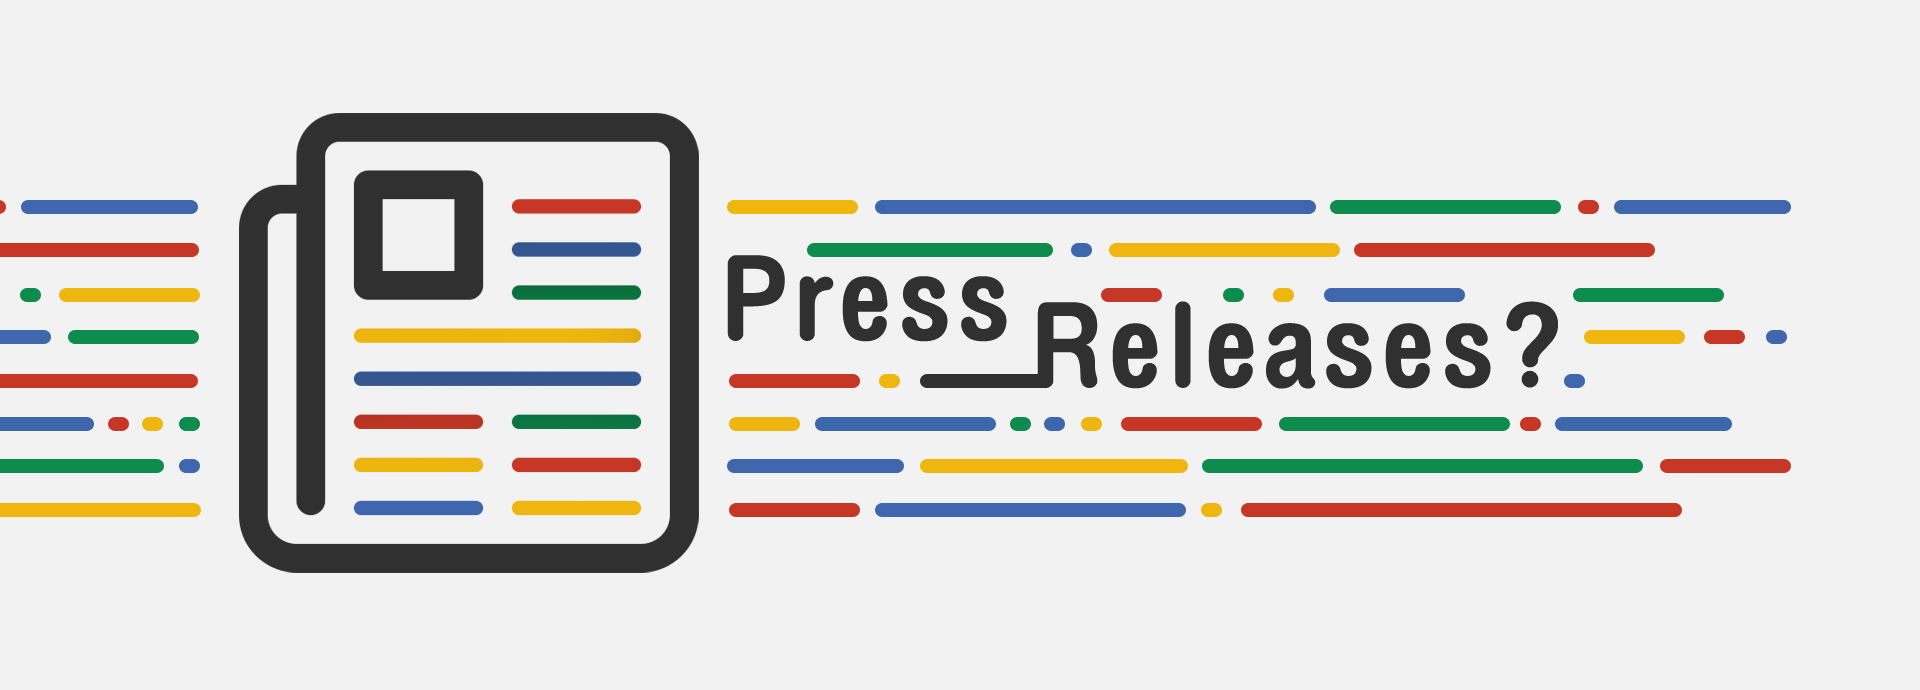 Press Releases? Really? In this Day and Age?